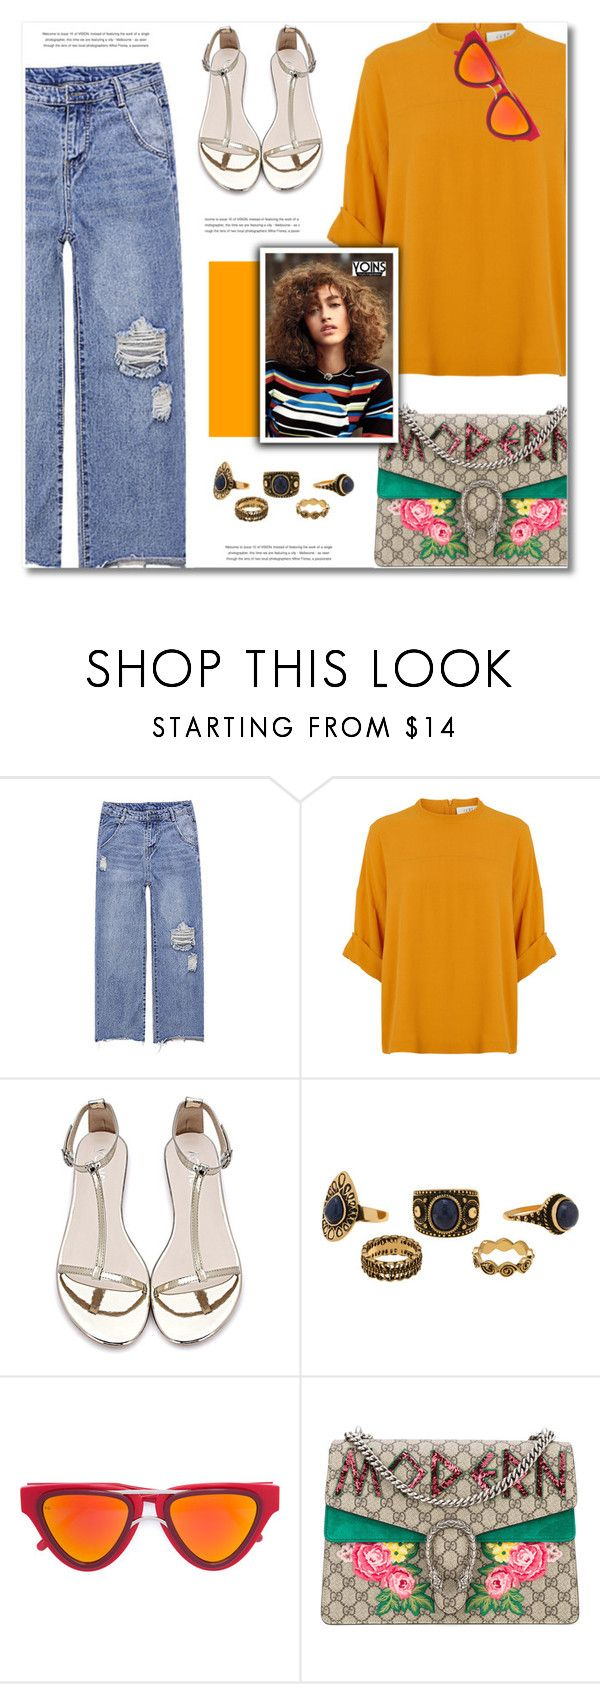 """YOINS"" by defivirda ❤ liked on Polyvore featuring Smoke x Mirrors, Gucci, yoins, yoinscollection and loveyoins"